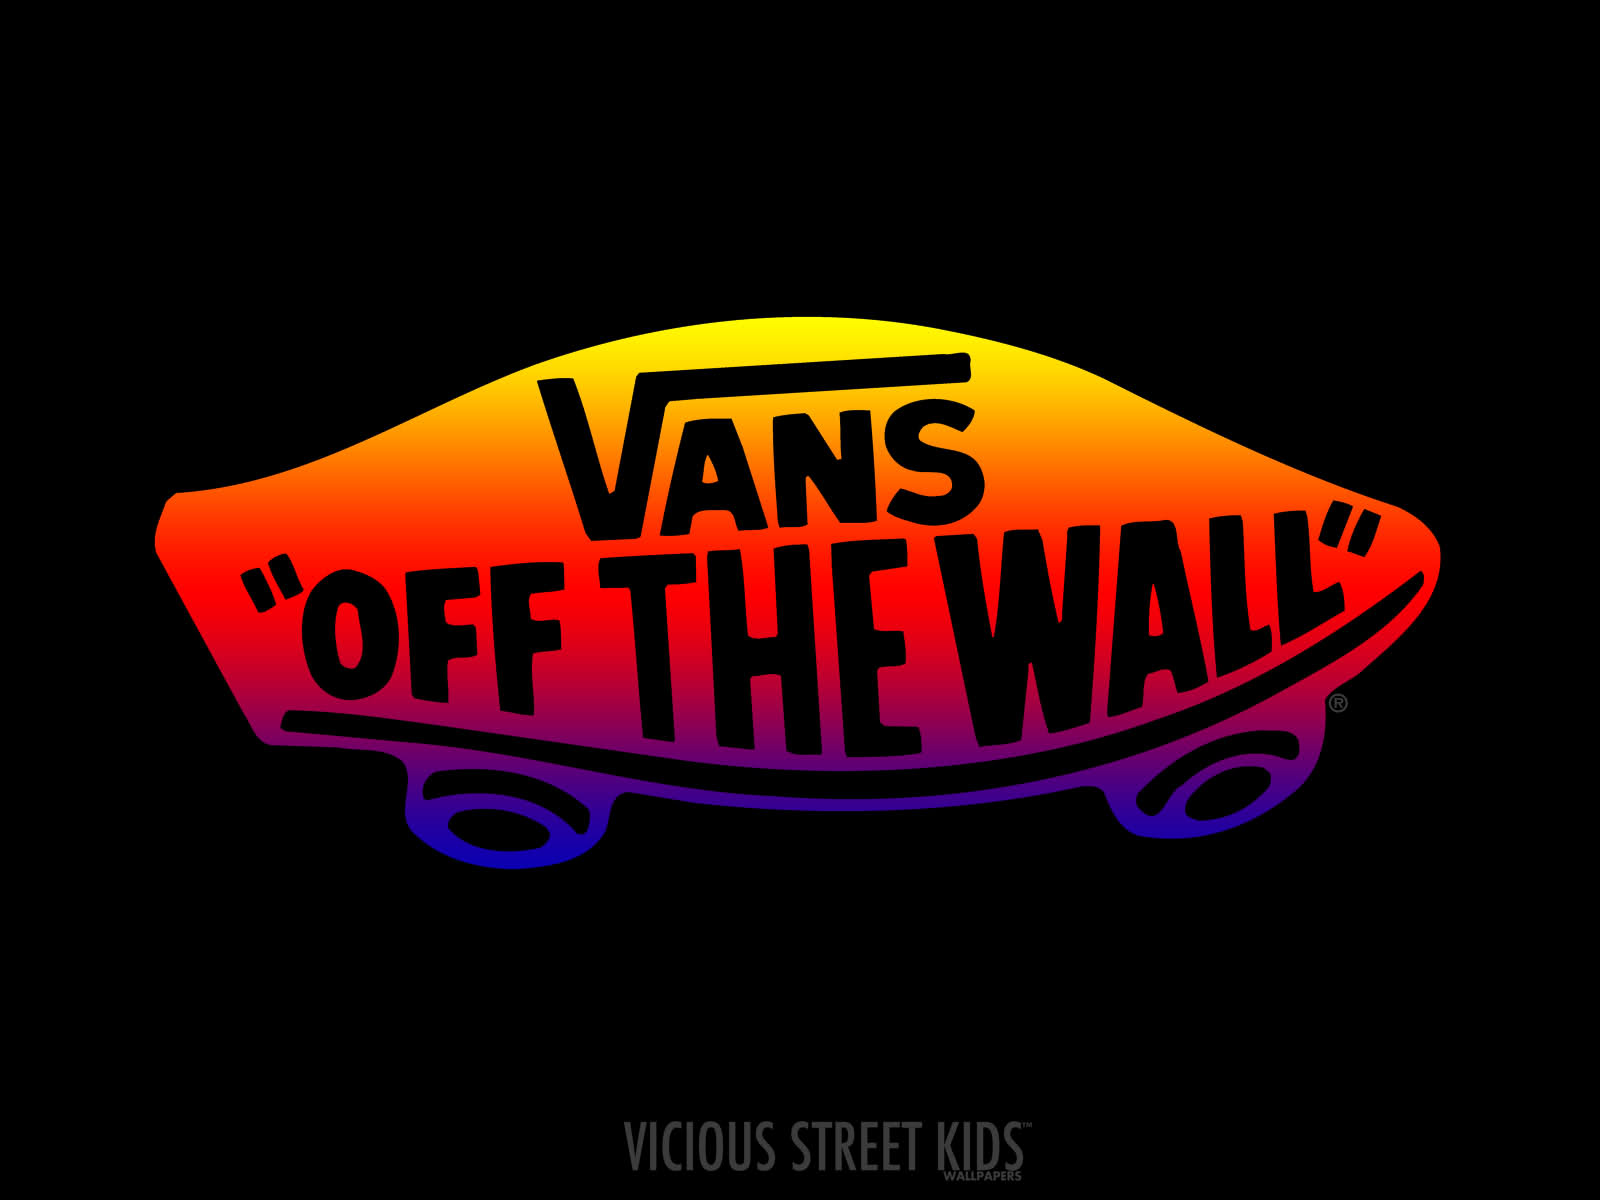 Vans Off The Wall Wallpapers 1600x1200